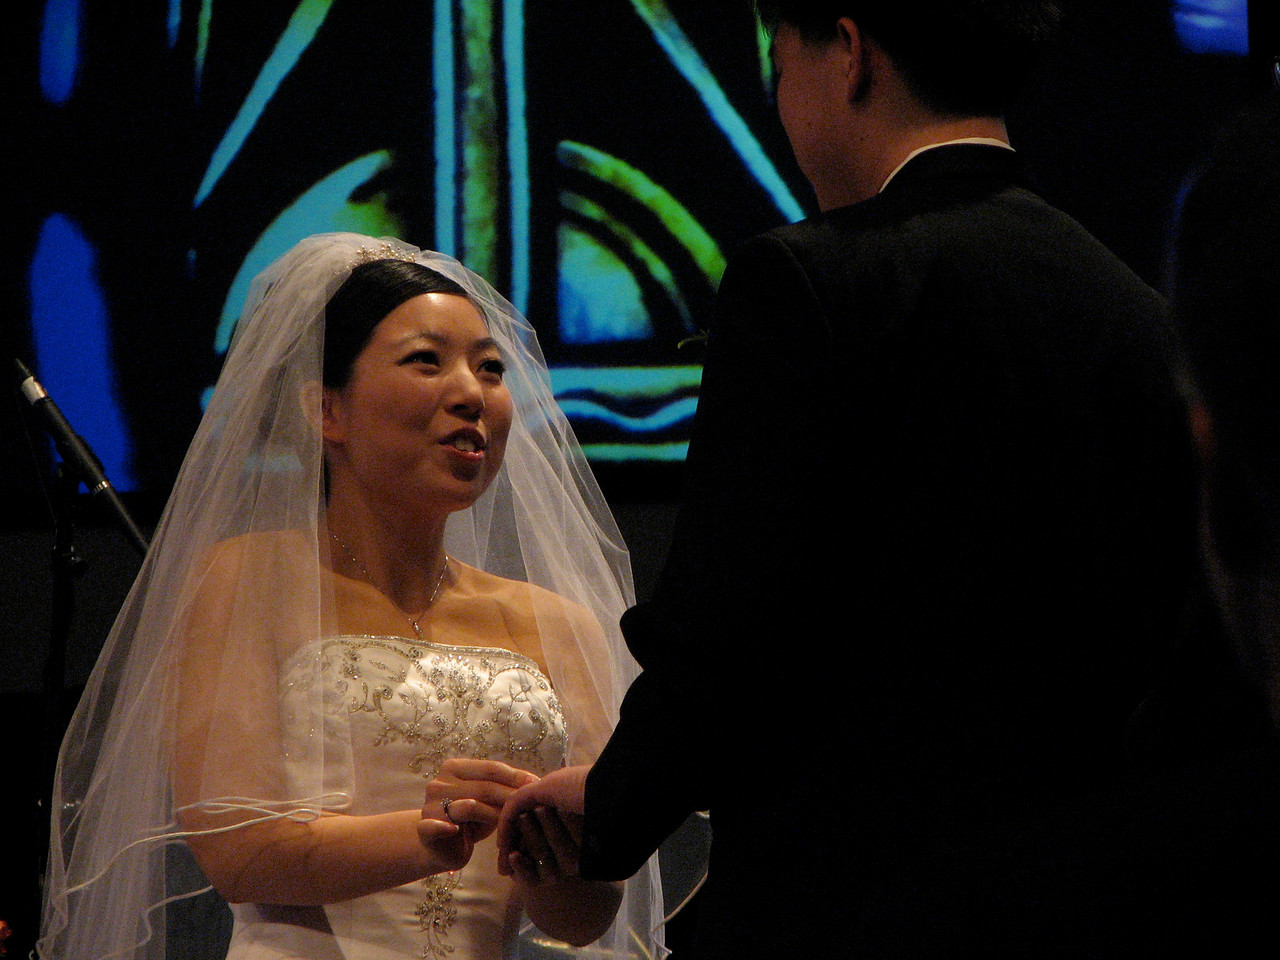 2007 05 19 Sat - The bride Cynthia Cheung 2